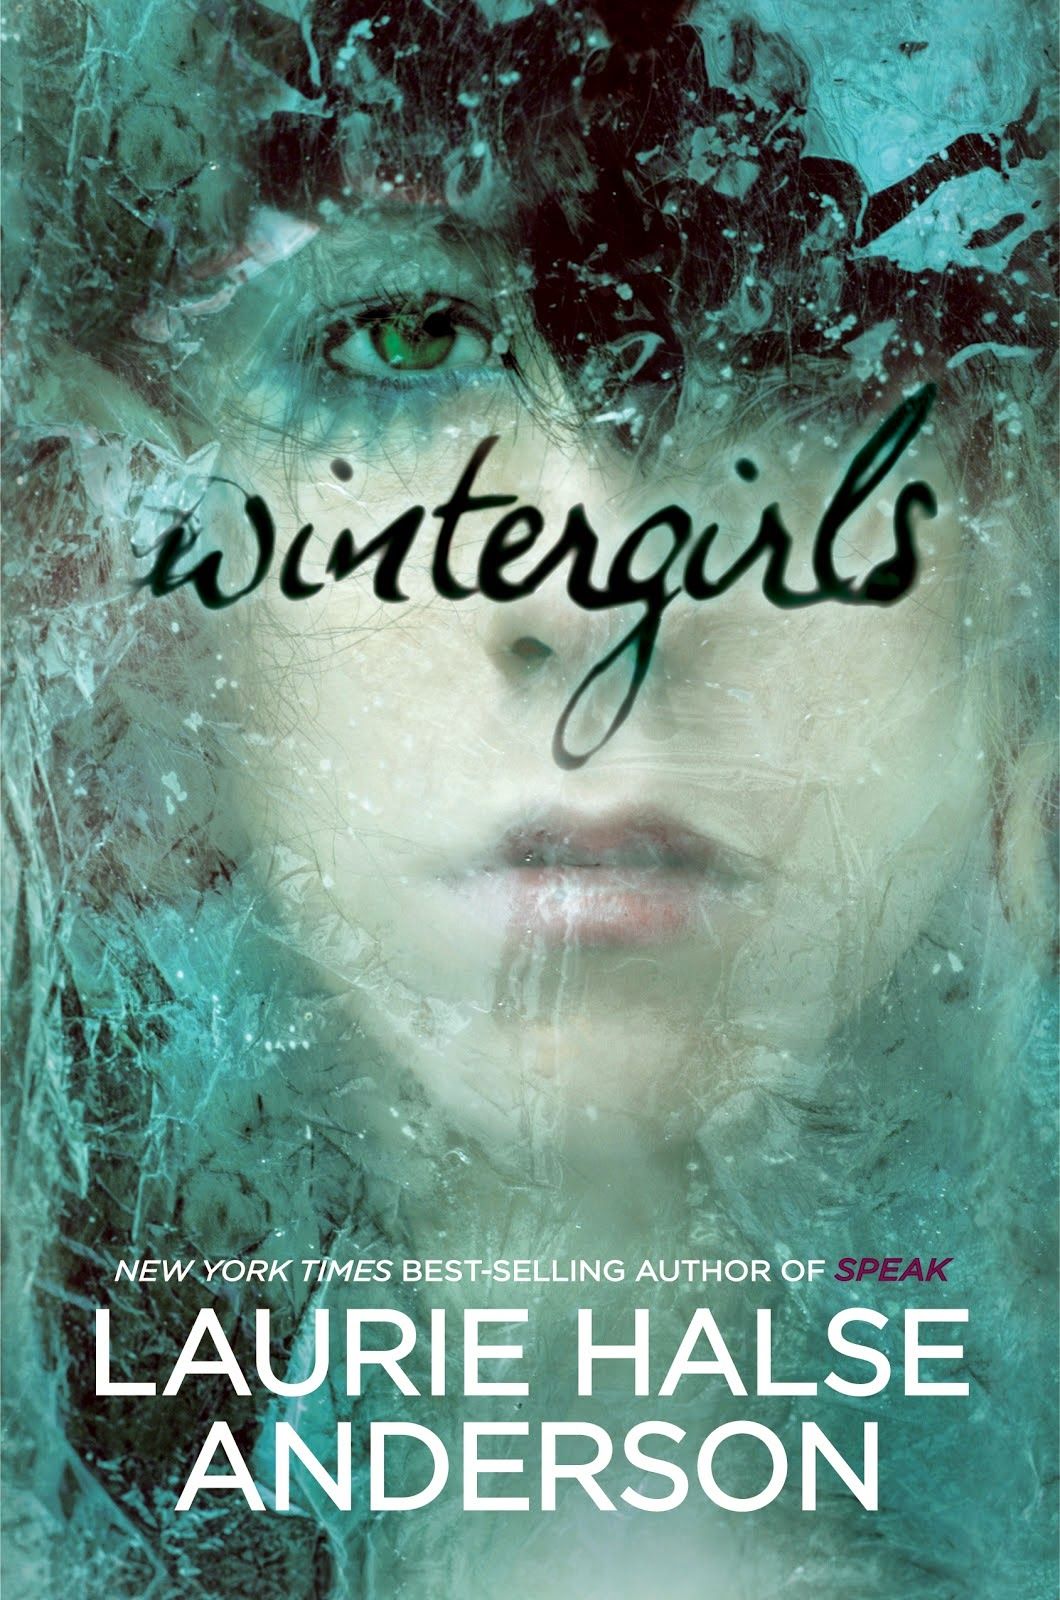 wintergirls by laurie halse anderson book cover large hd